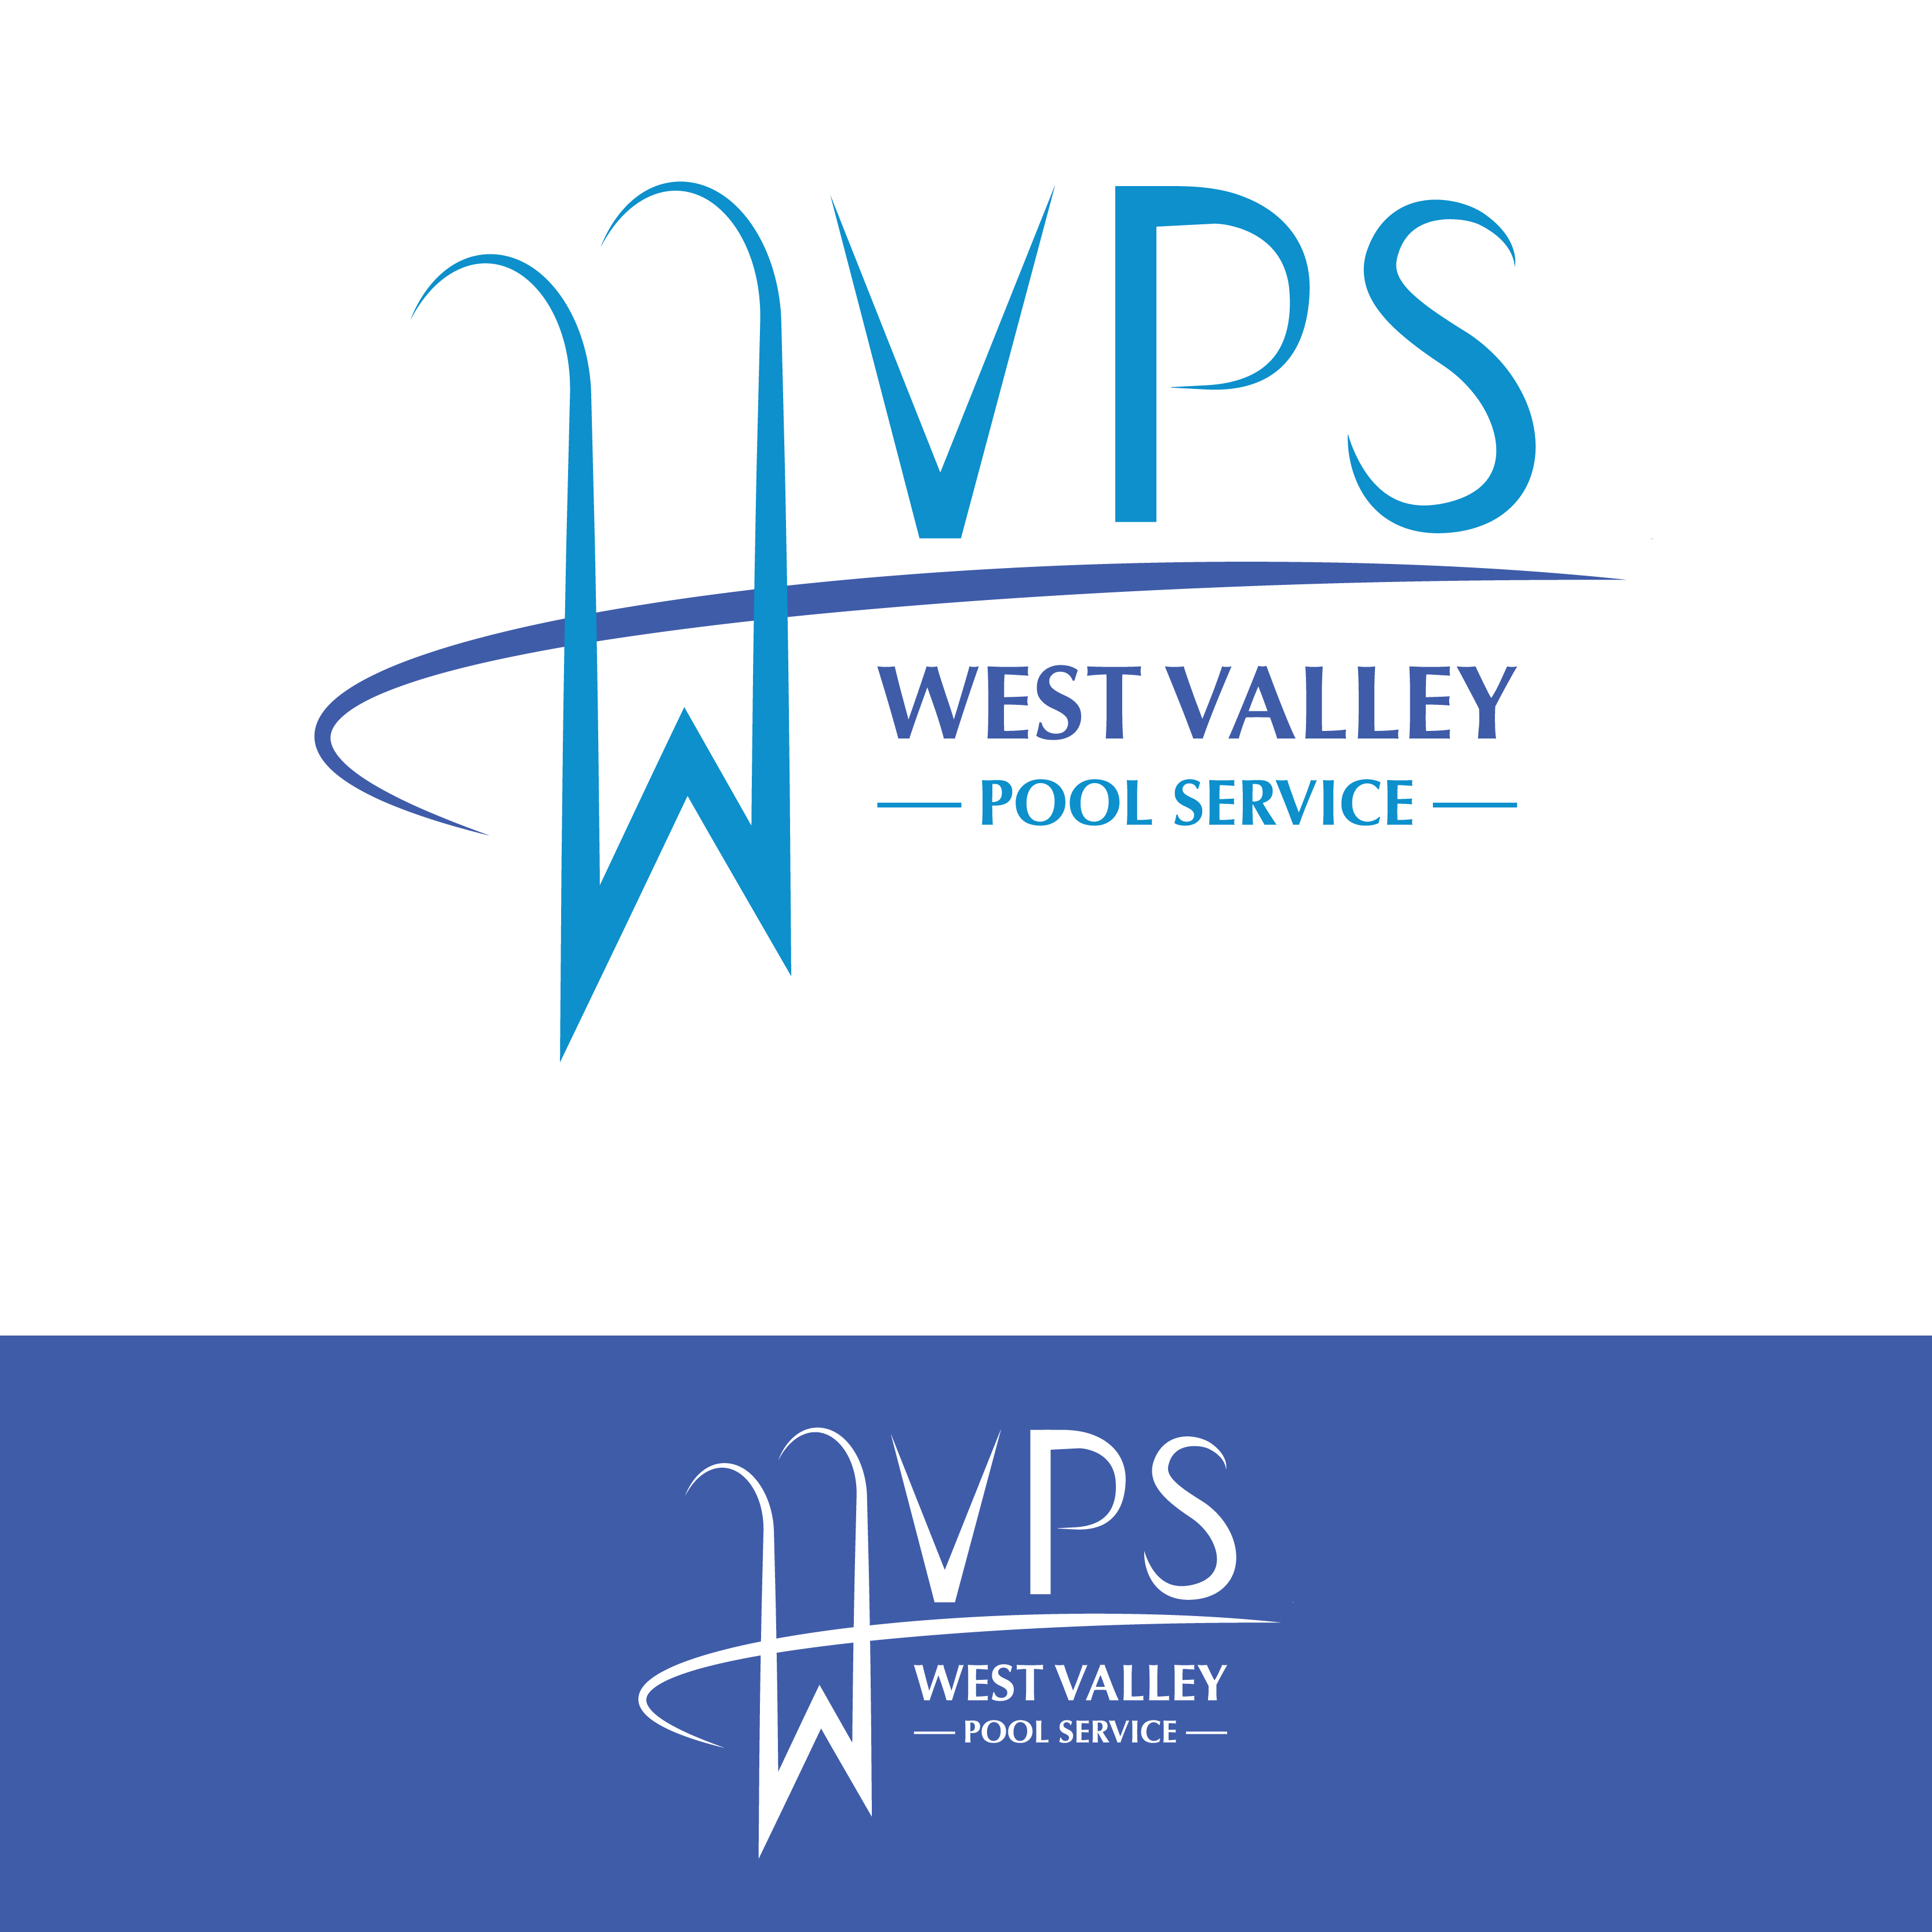 Logo Design by Tiina Kettunen - Entry No. 46 in the Logo Design Contest Clever Logo Design for West Valley Pool Service.